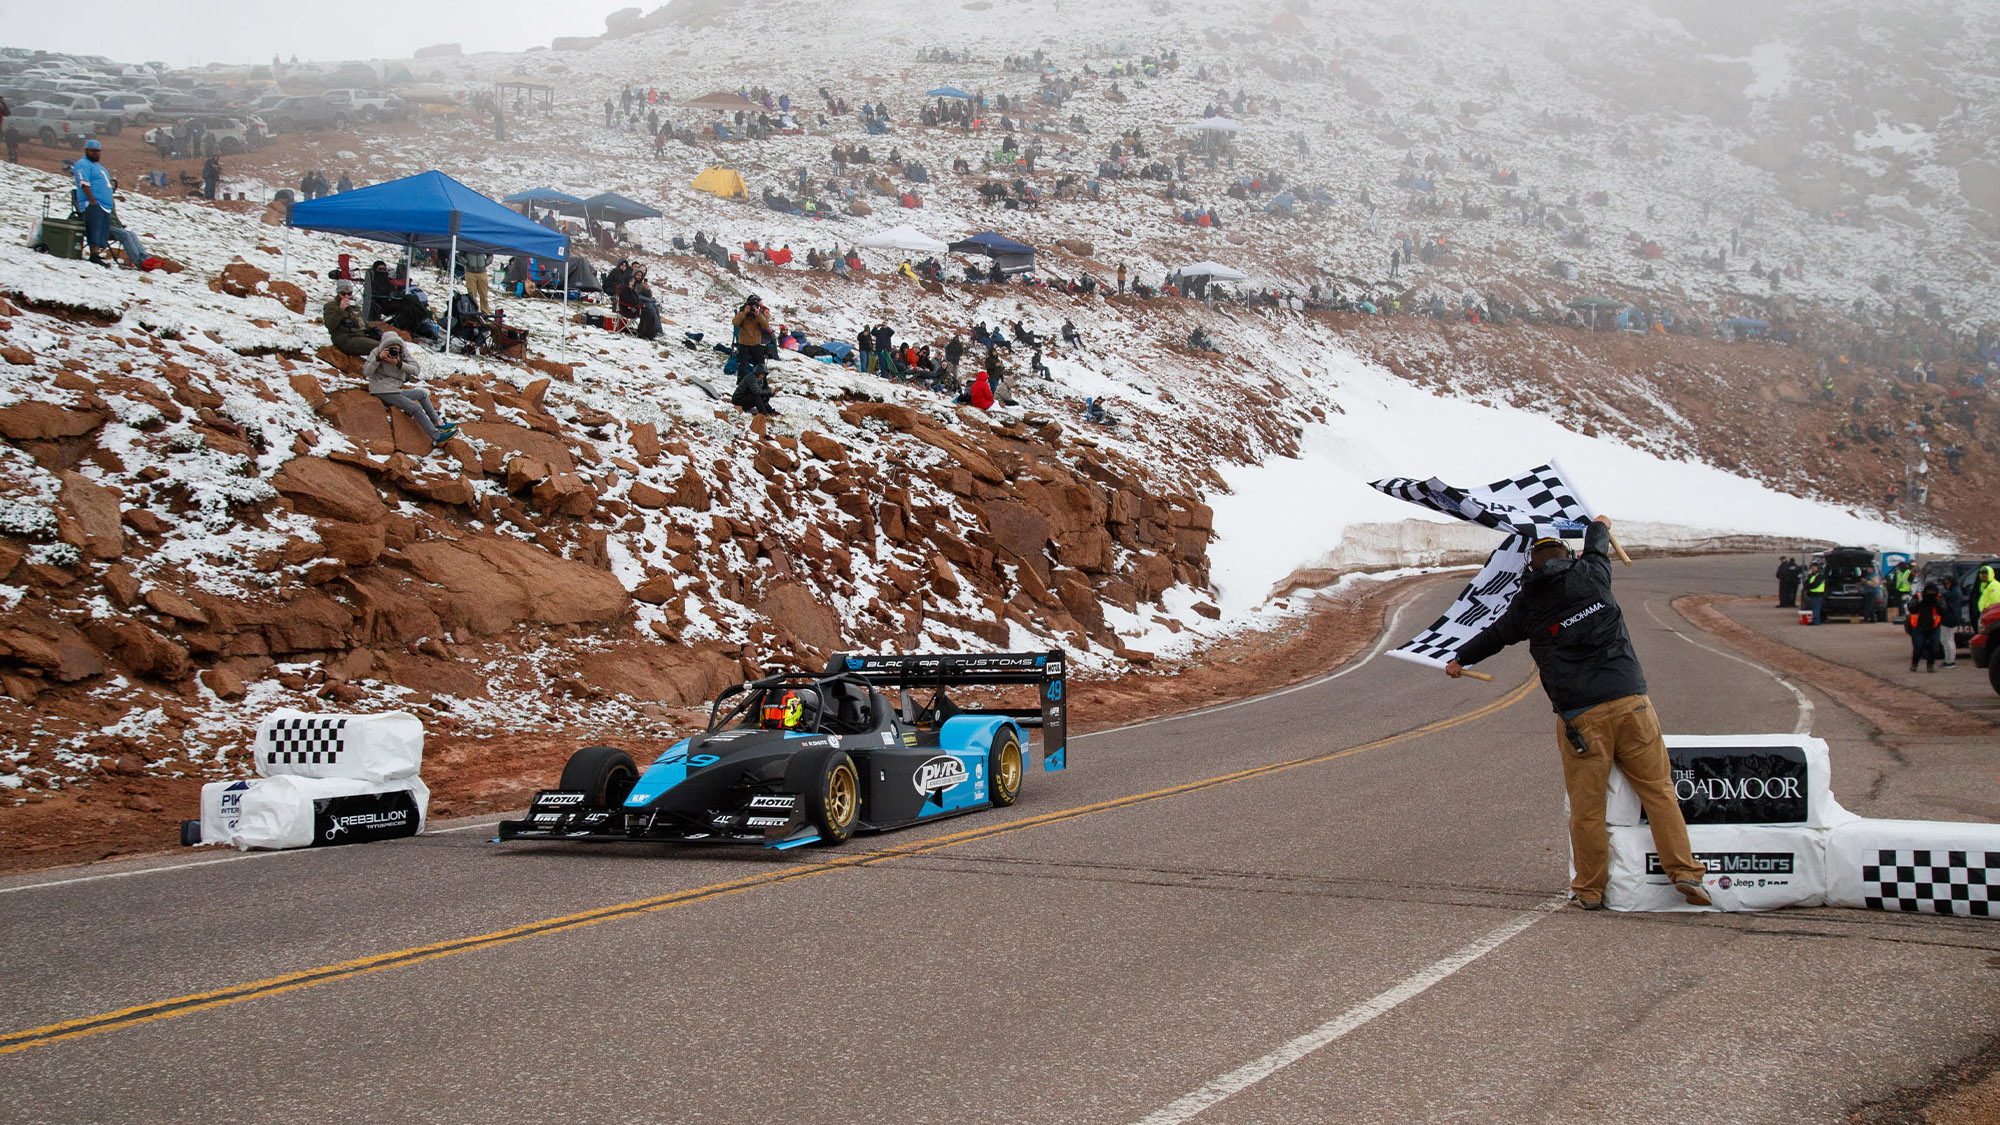 Robin Shute crosses the line at the top of Pike's Peak in 2021